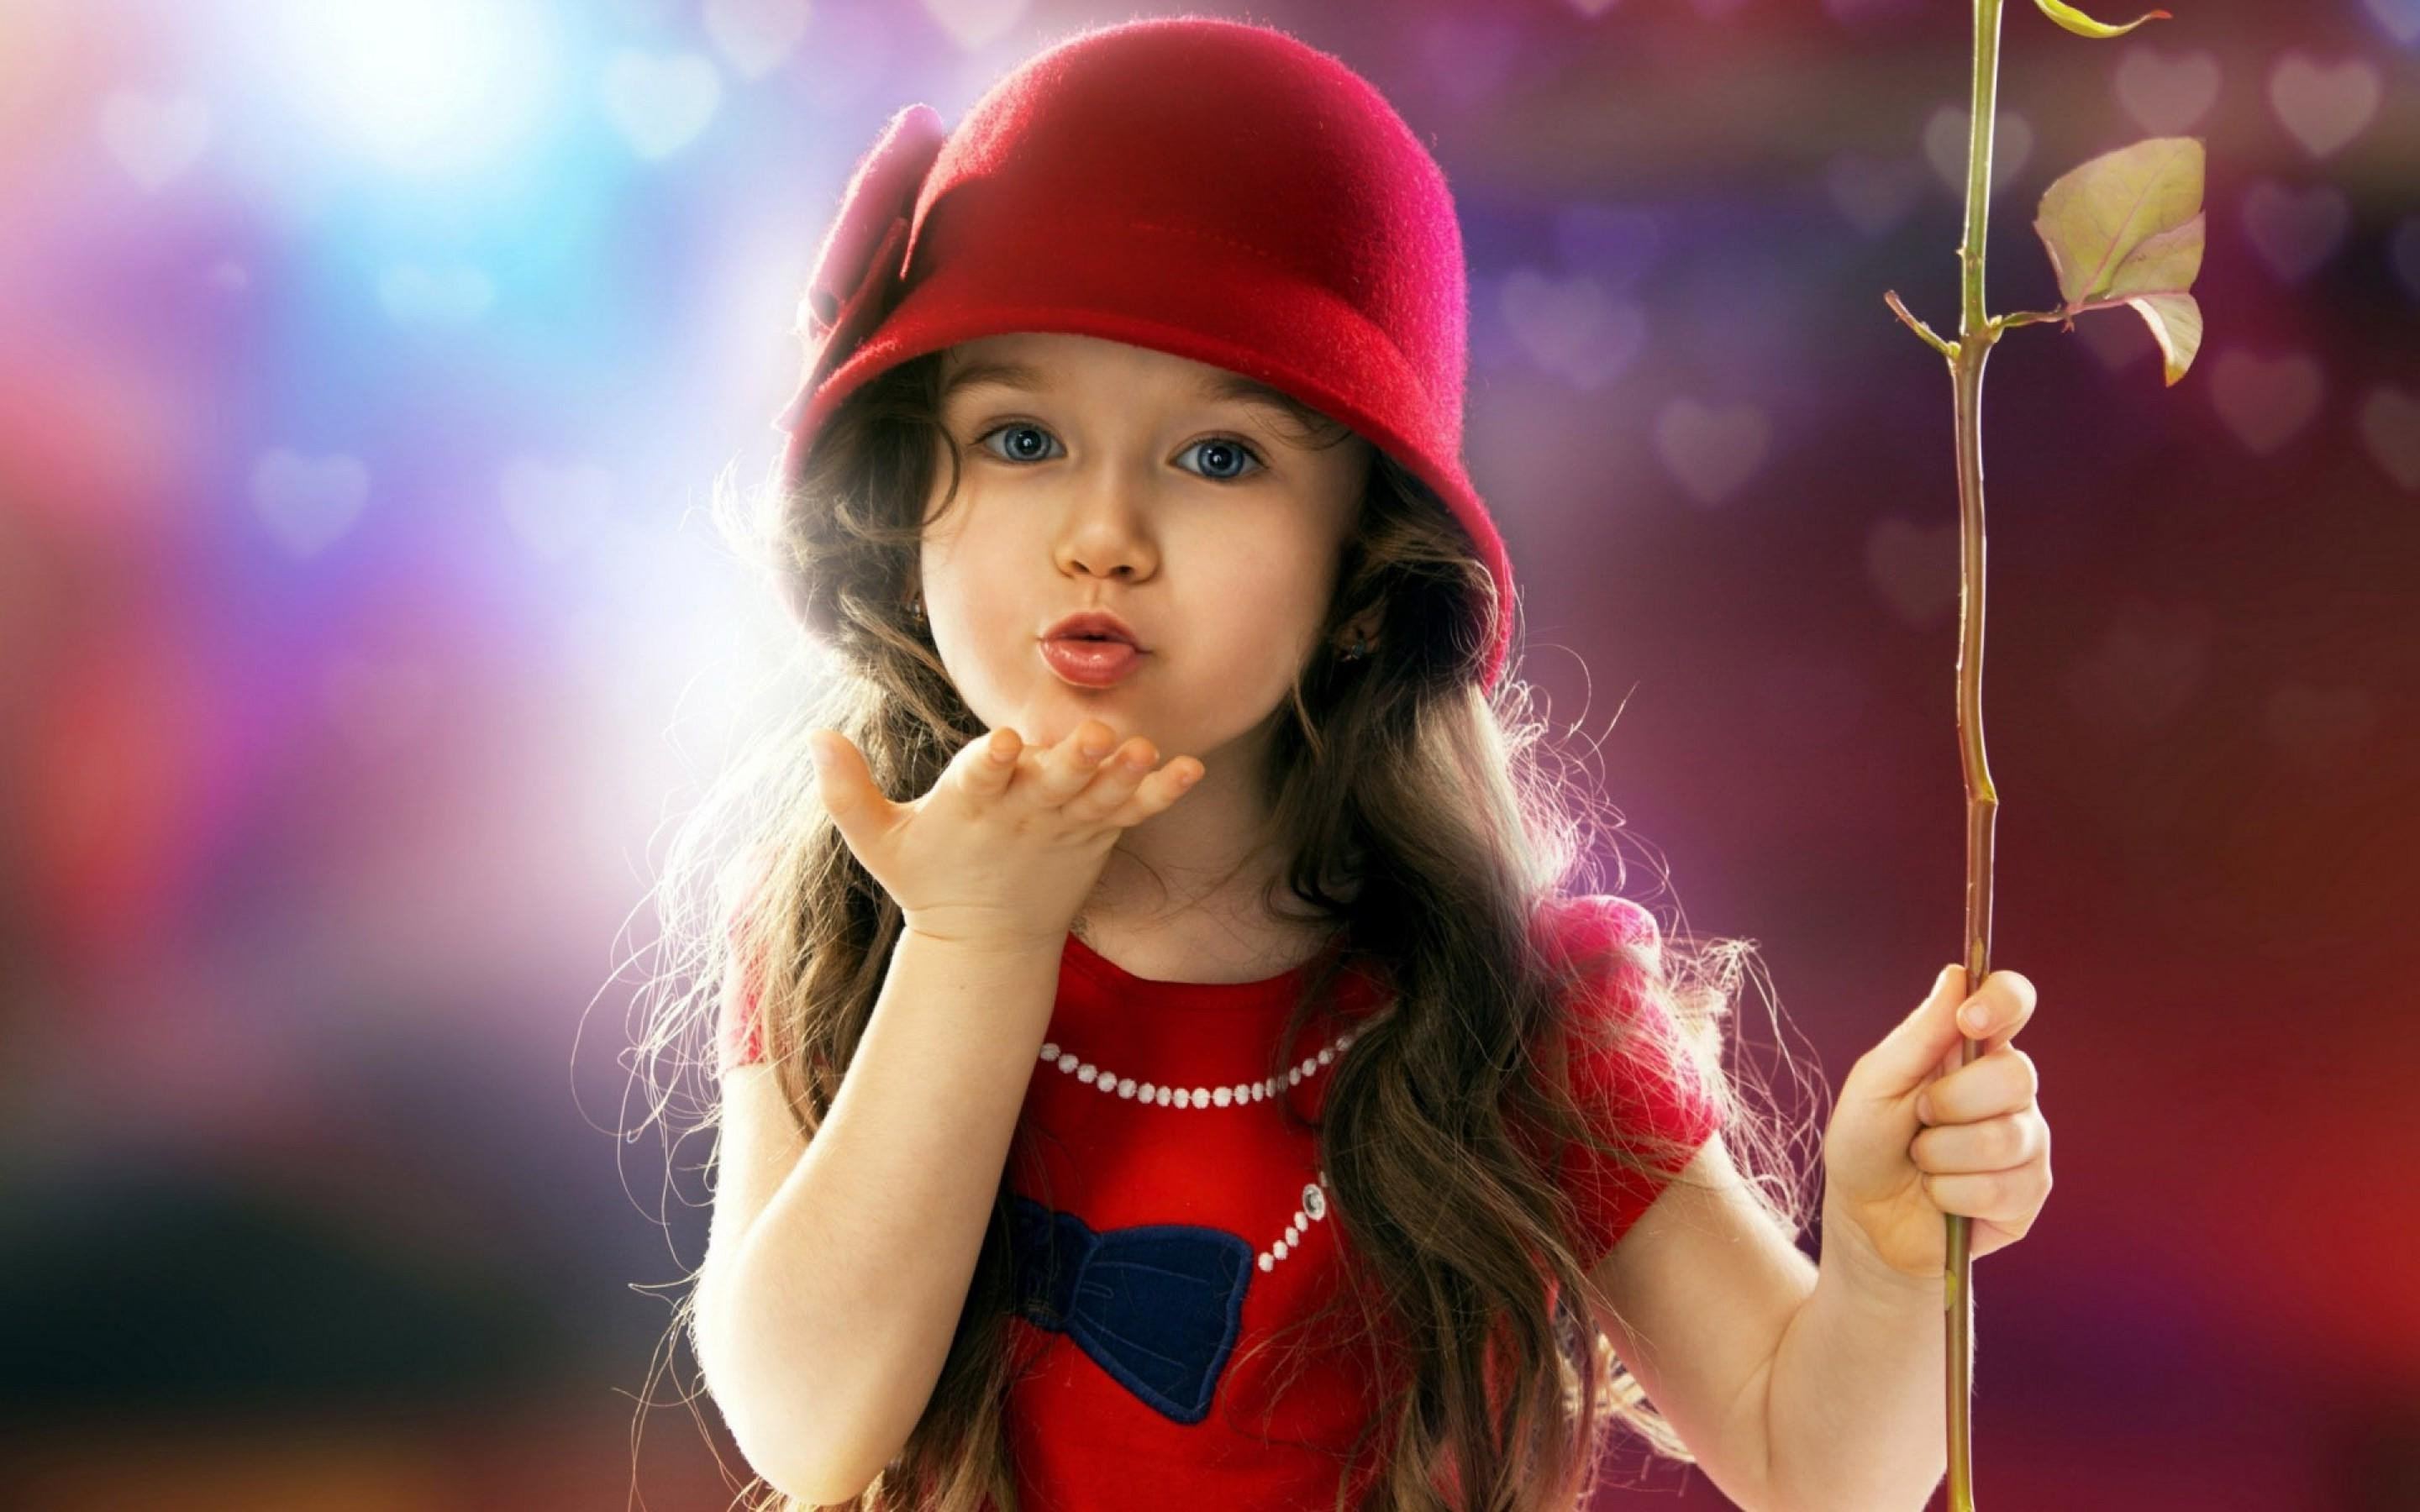 Small Girl Love Wallpaper : Little Girl Blowing a Kiss, HD cute, 4k Wallpapers, Images, Backgrounds, Photos and Pictures